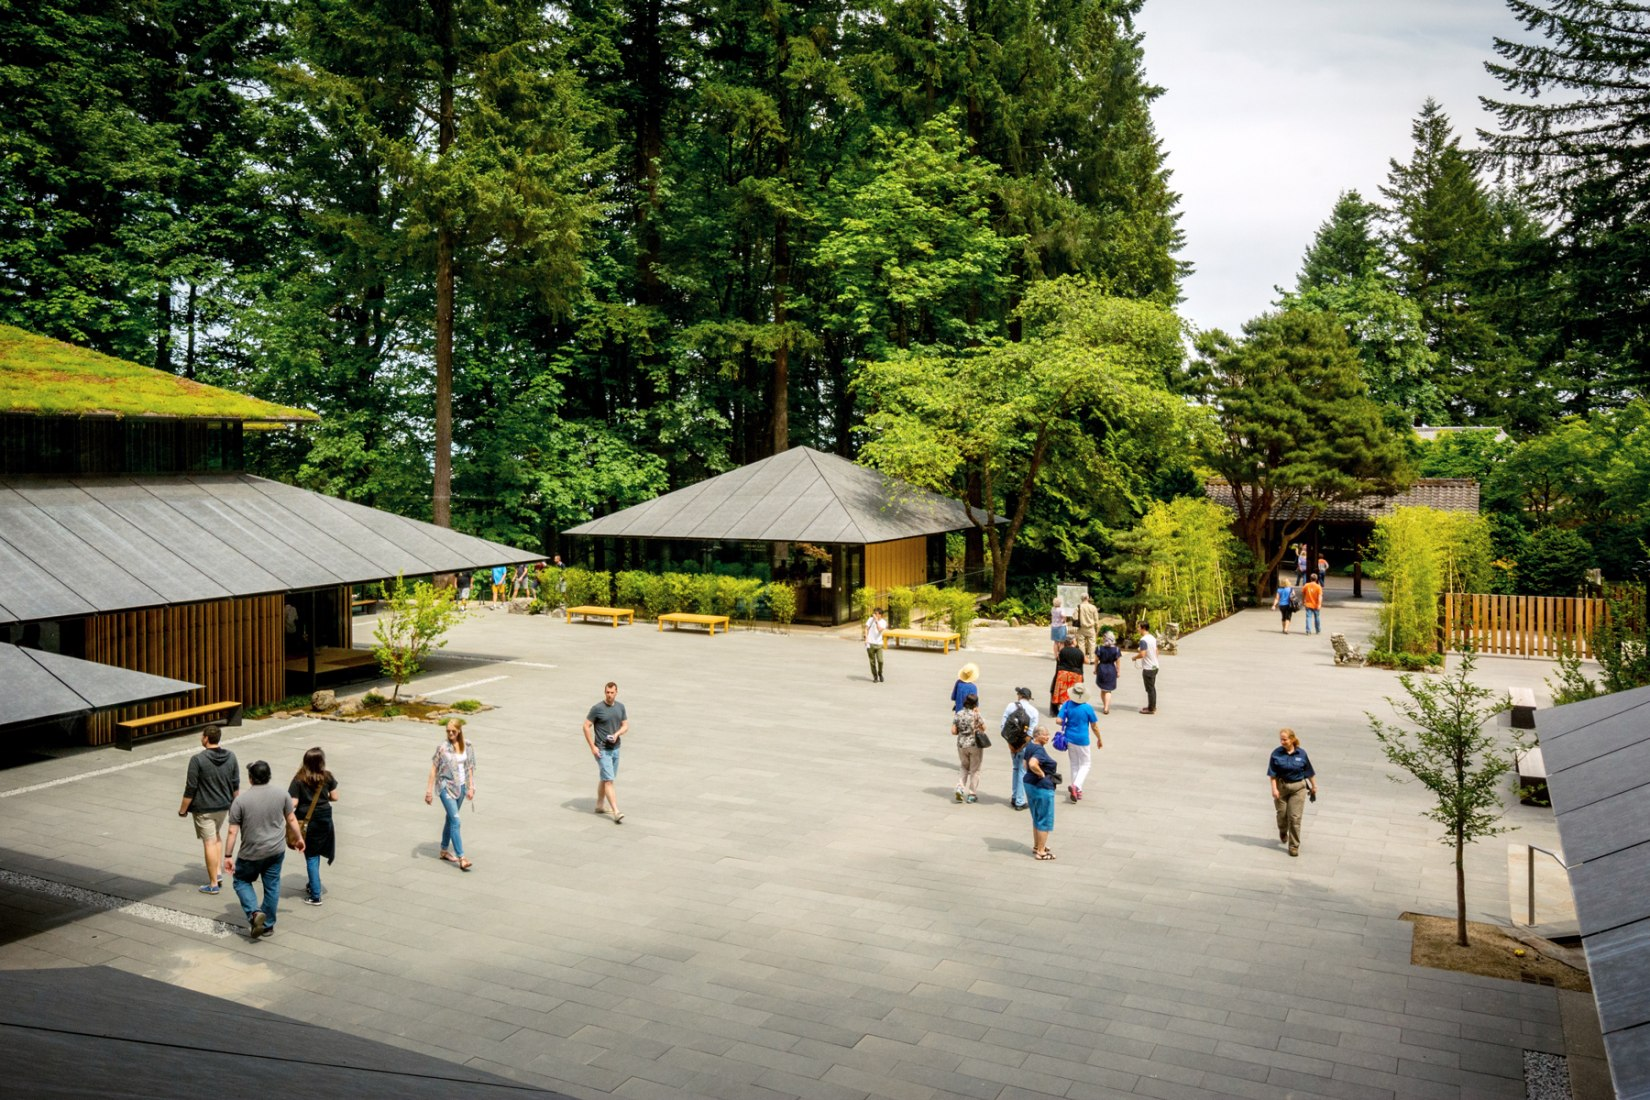 Portland Japanese Garden Expansion by Kengo Kuma. Photograph by Bruce Foster